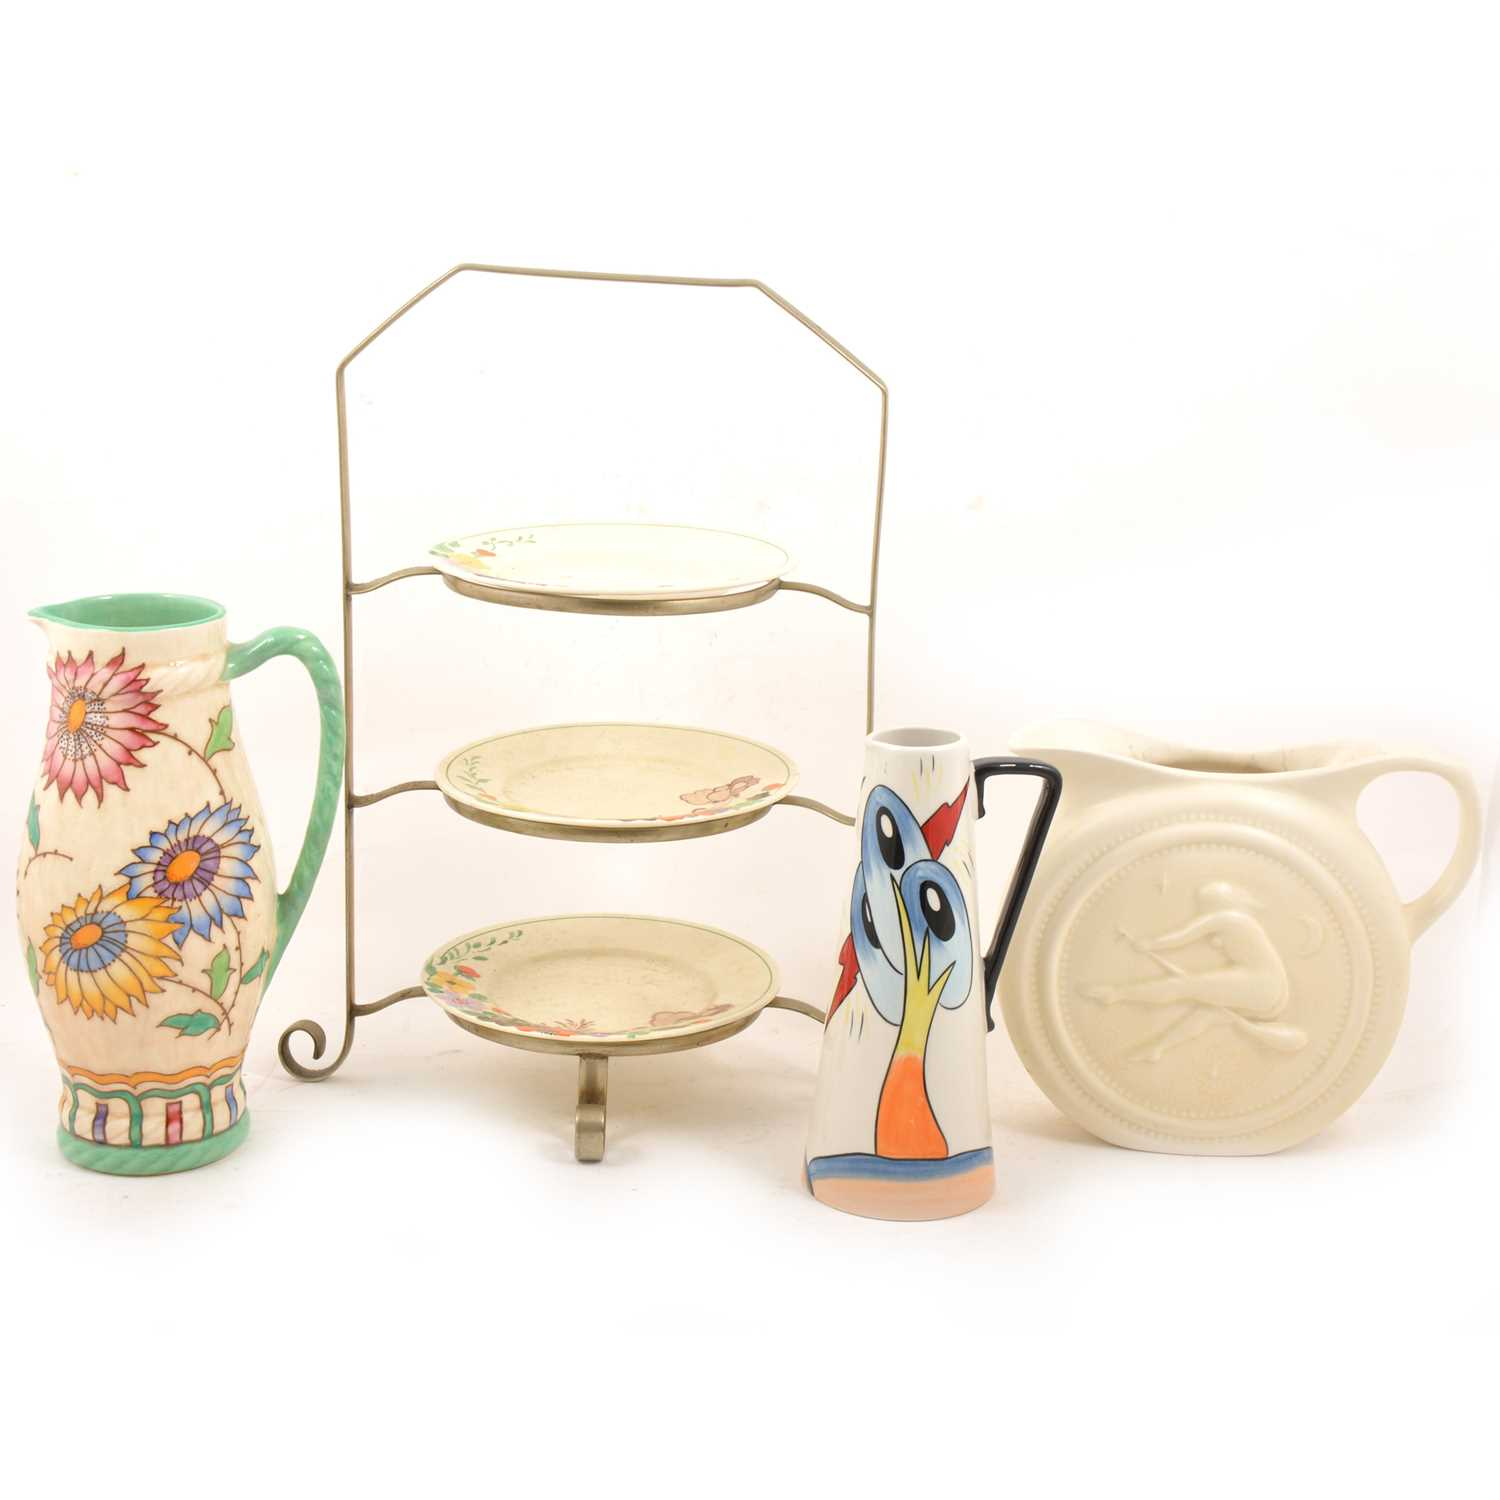 Lot 56 - Clarice Cliff, Charlotte Rhead, Lorna Bailey and Vulcan ceramics